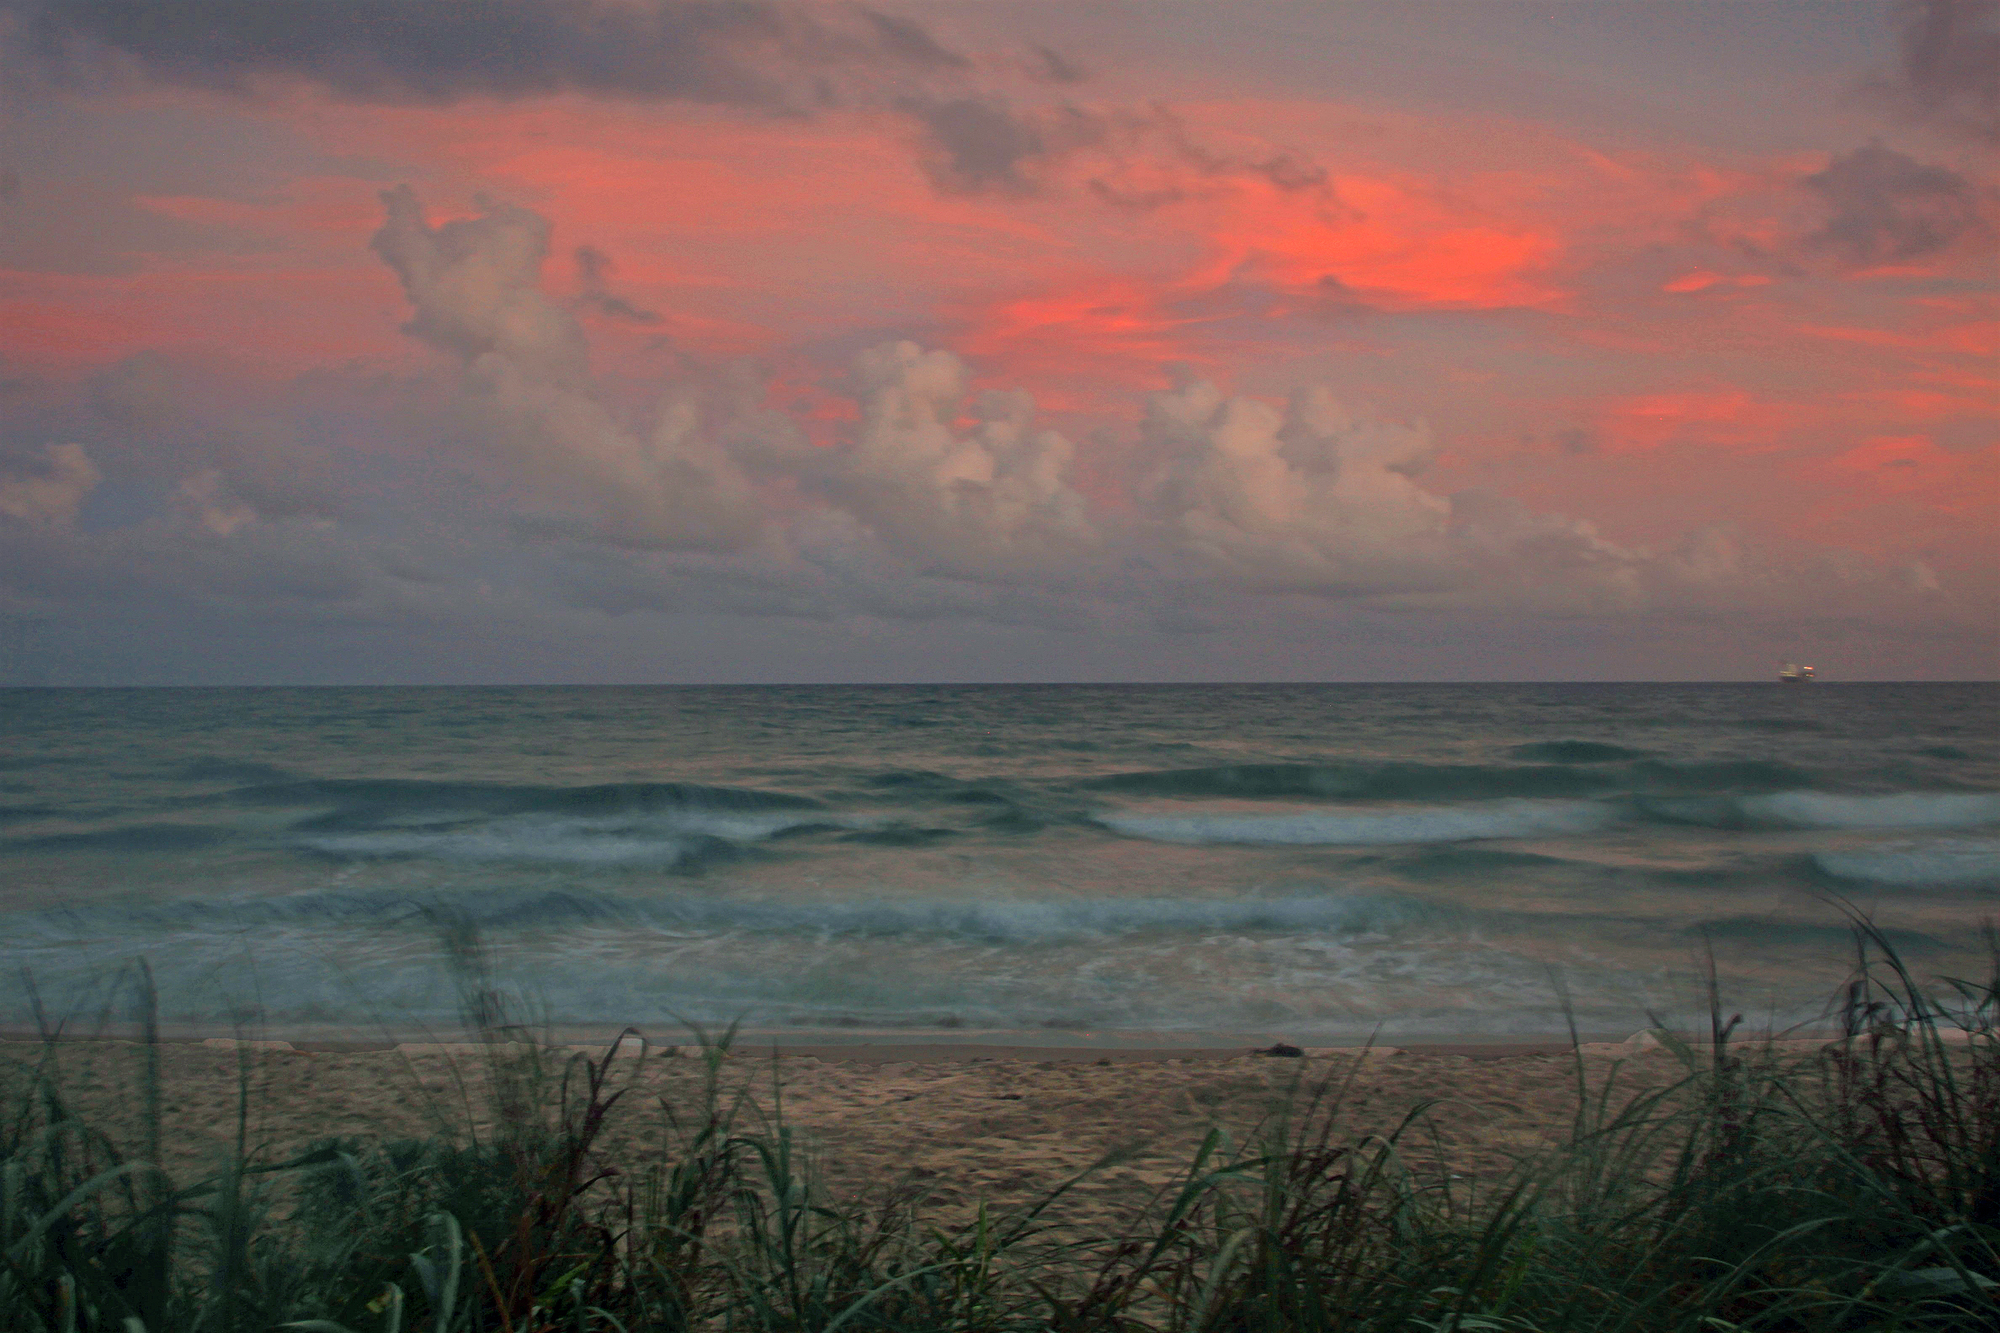 10 Barry_Greff_Pastels_Ocean_Views.jpg